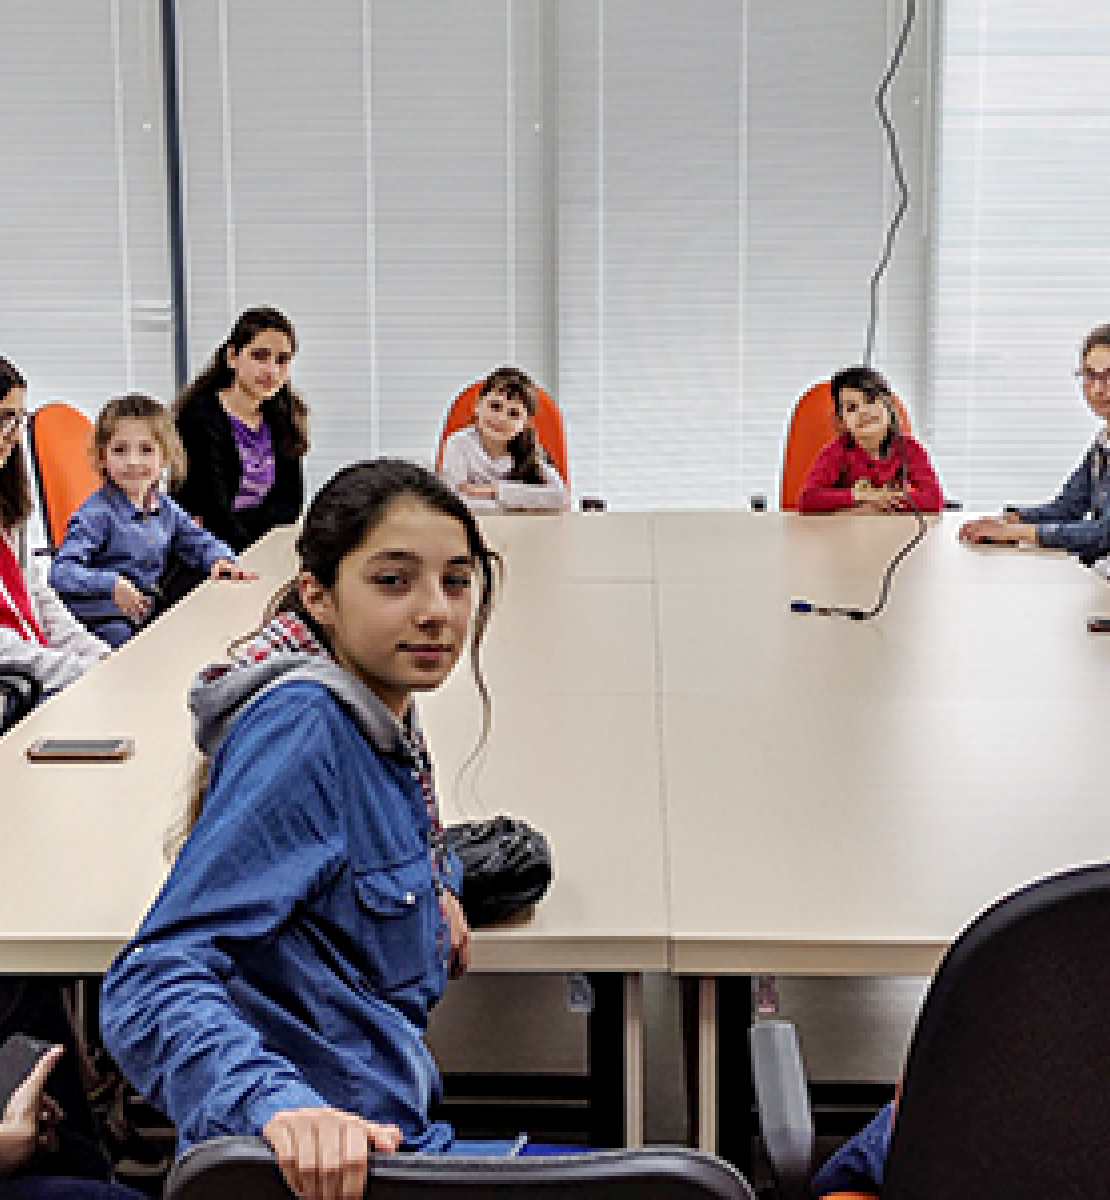 Girls sit around a conference room table